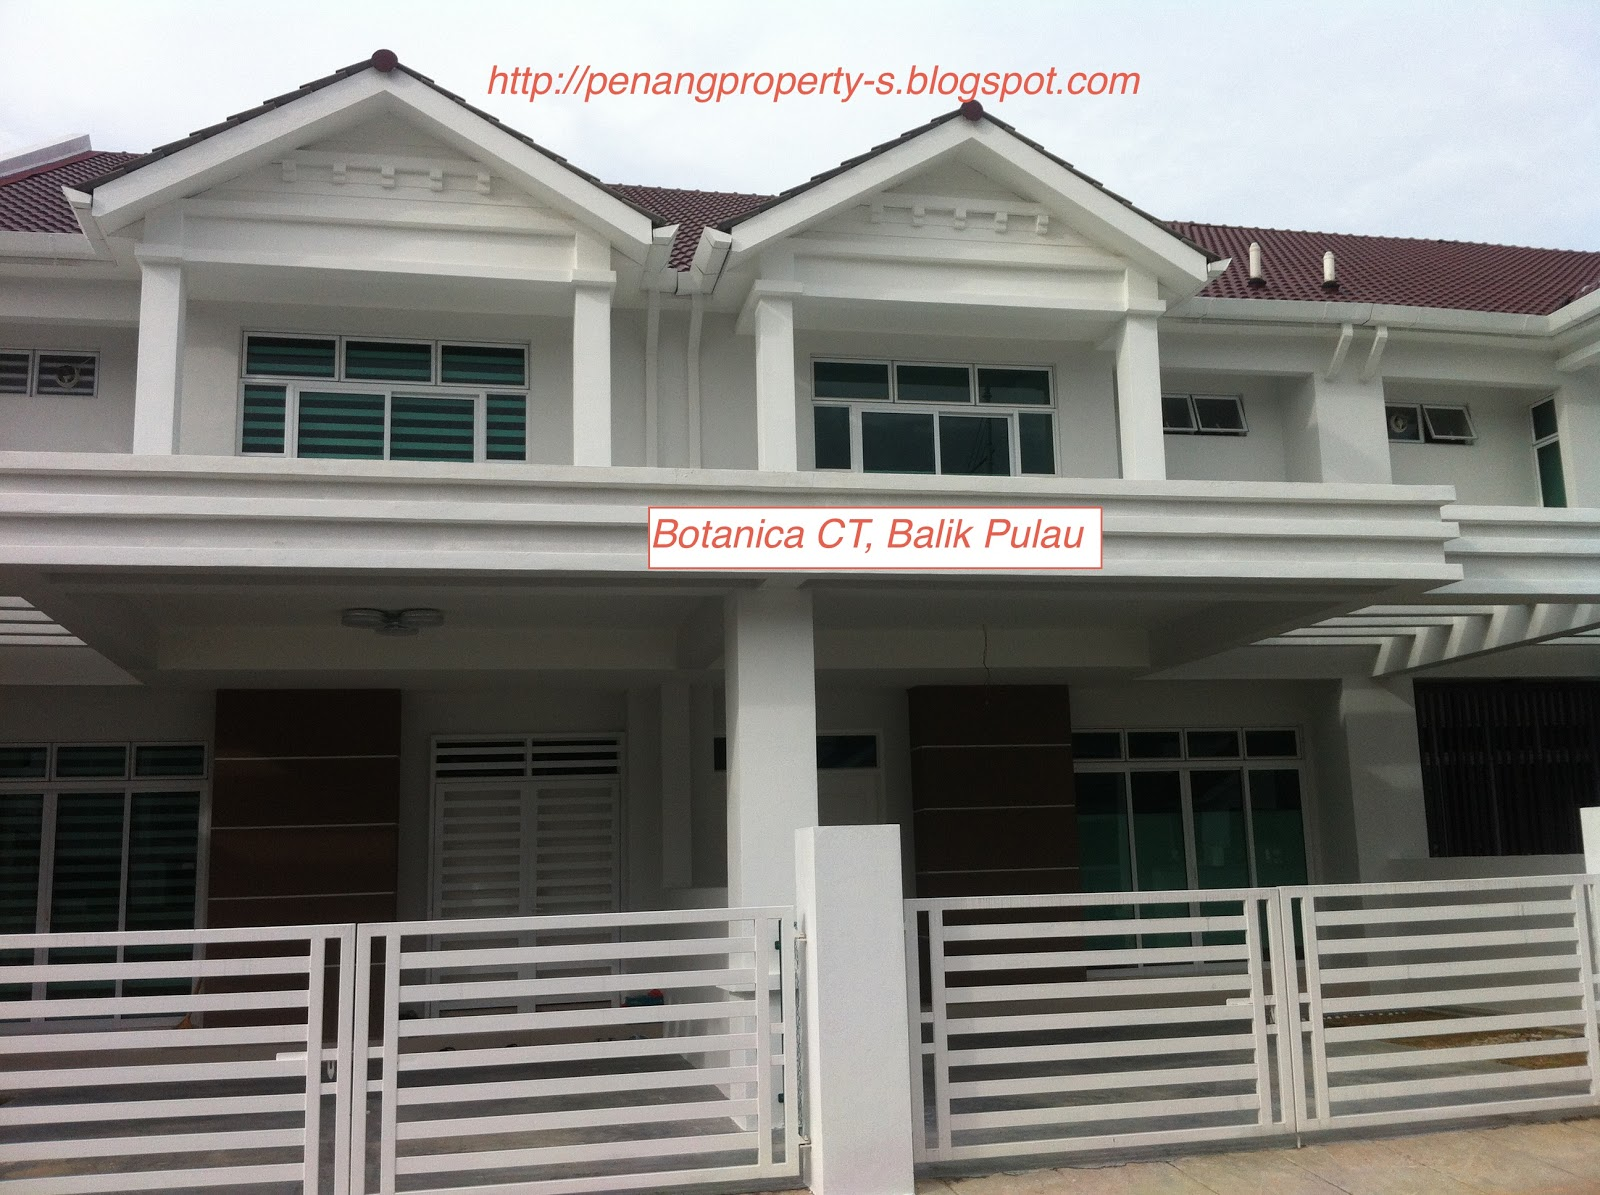 Penang property the realtor who protects your interests for 7 terrace penang